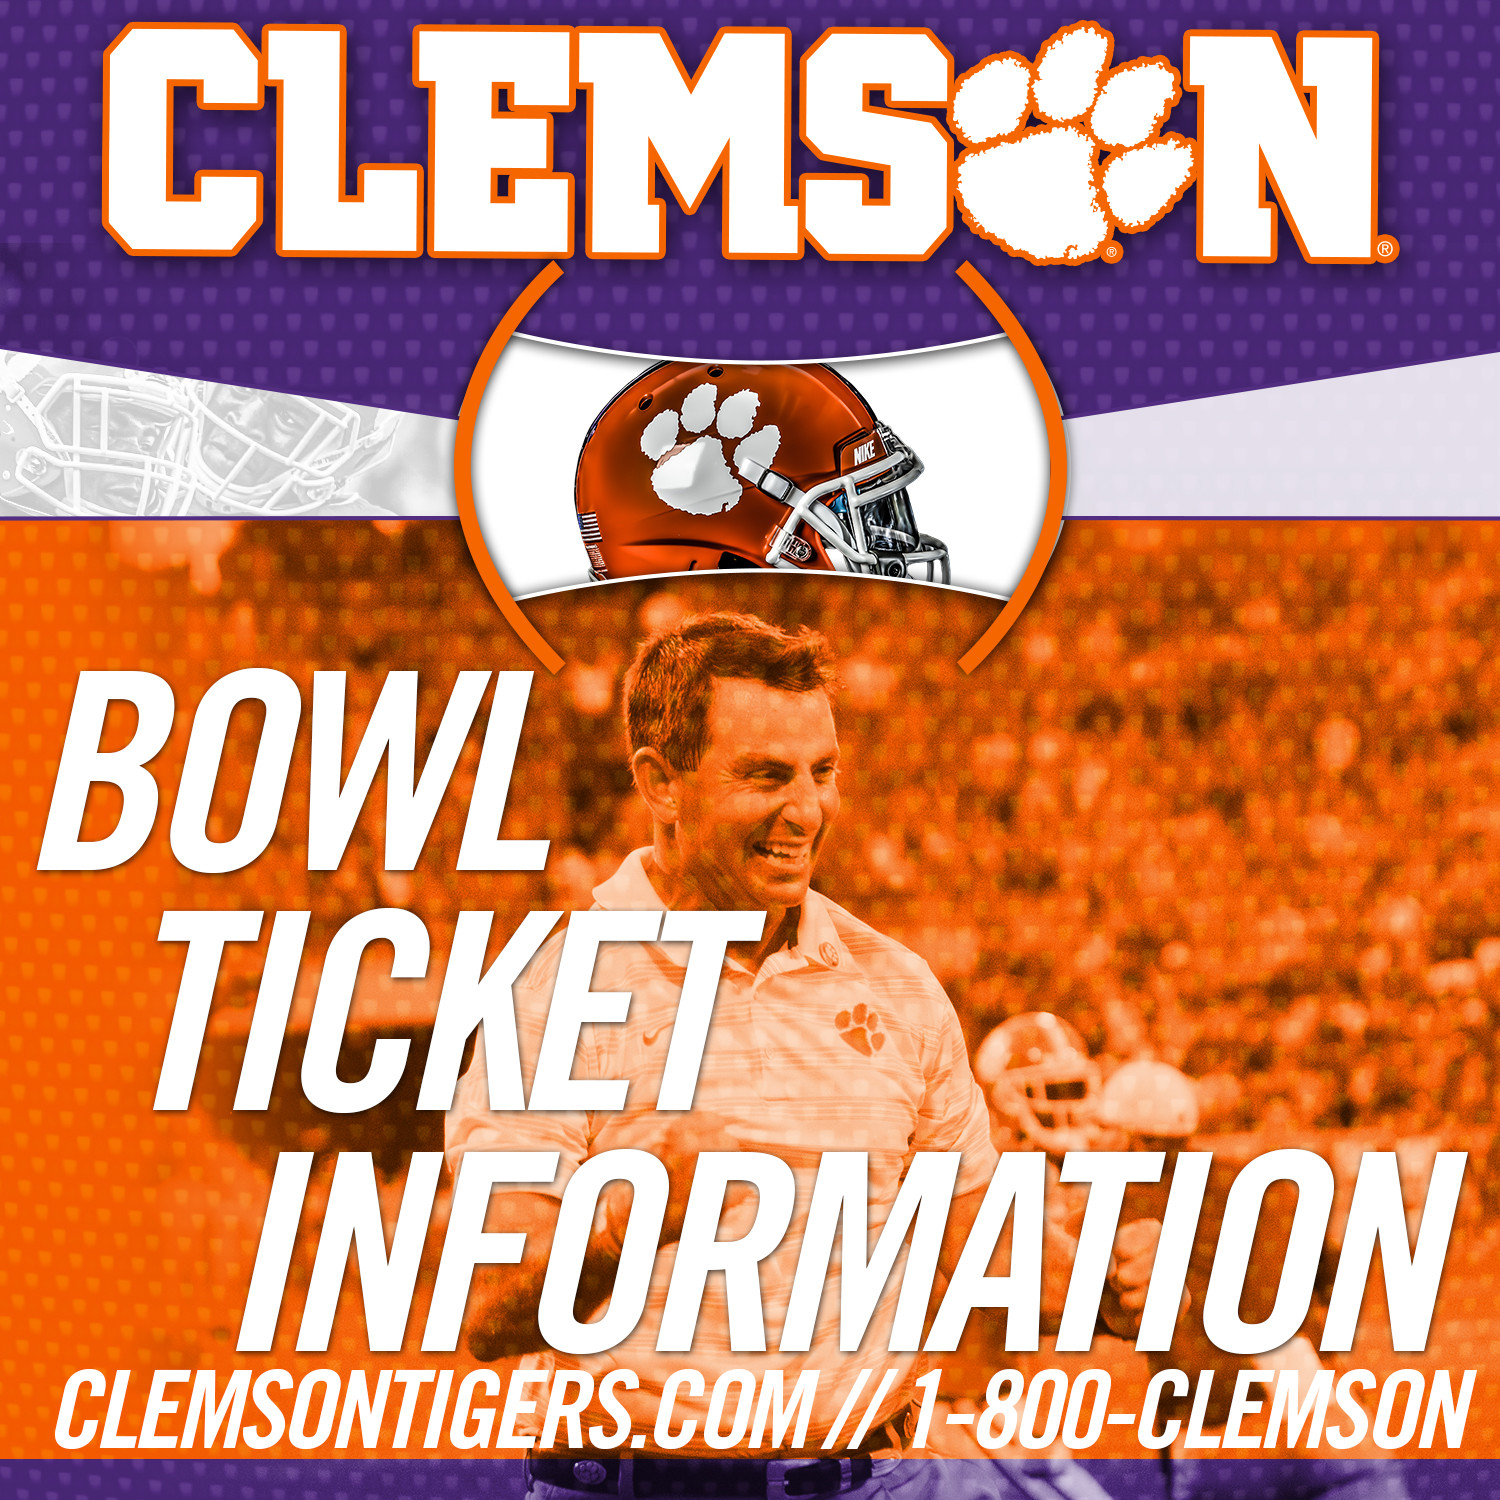 IPTAY Donors Bowl Ticket Information